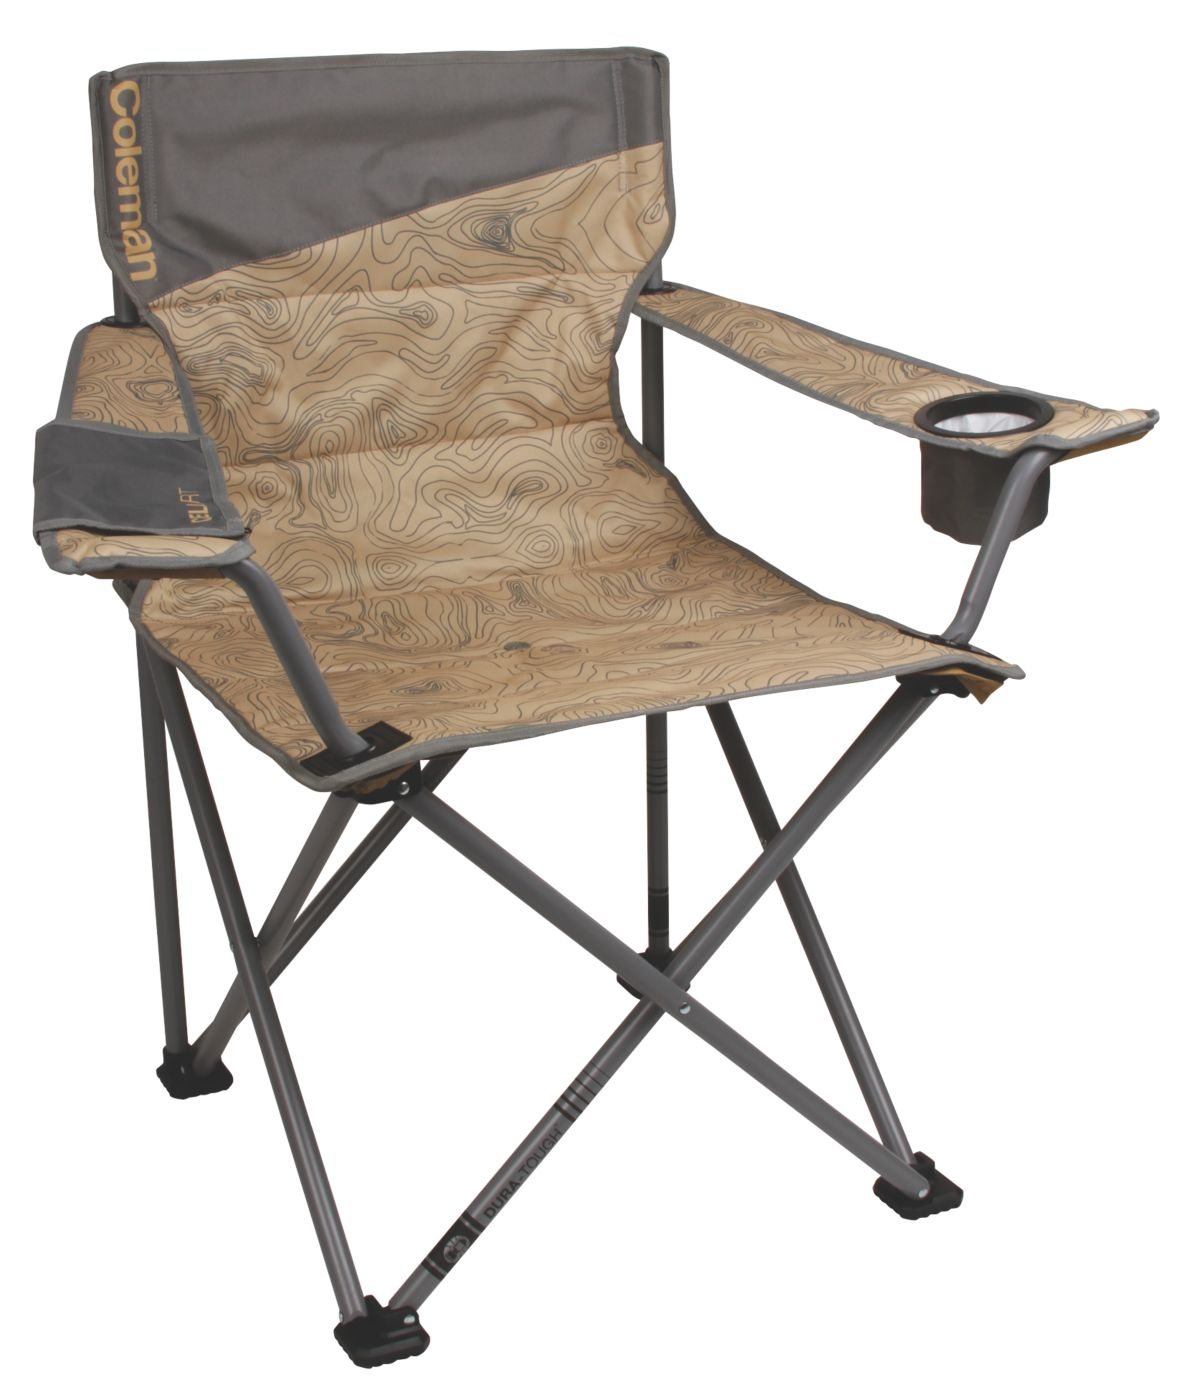 Delicieux Big N Tall™ Quad Chair